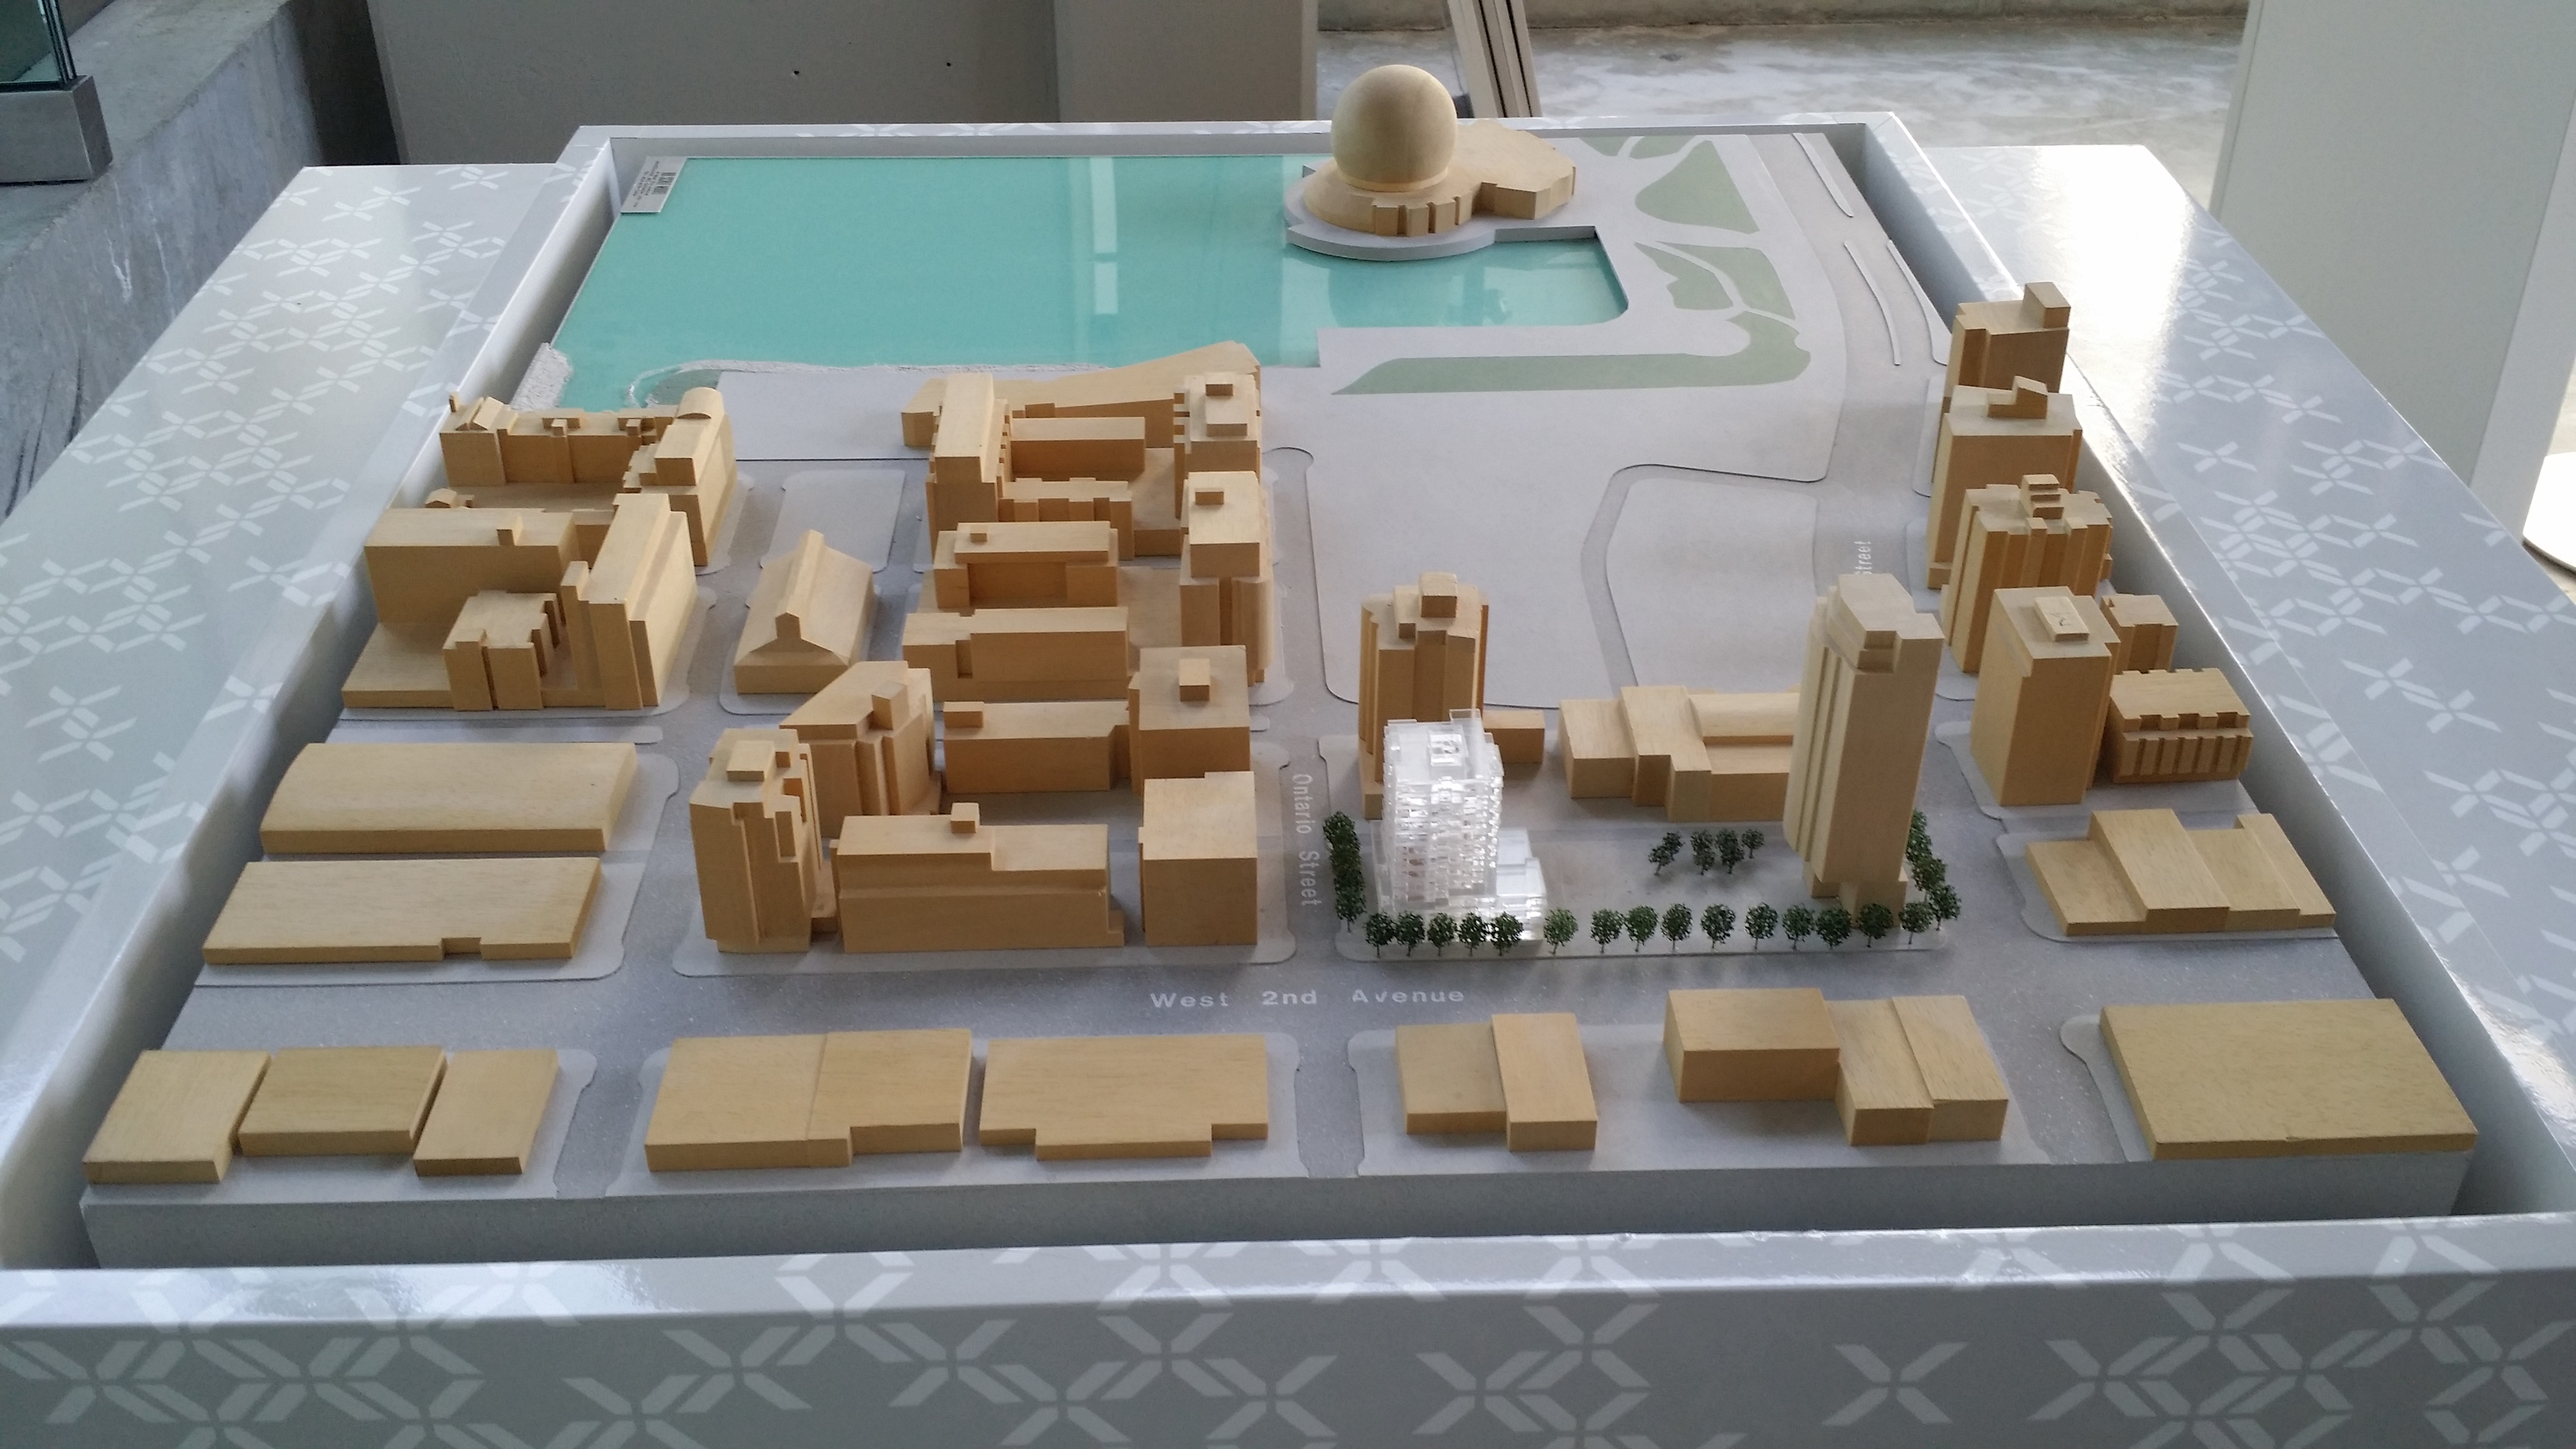 Proximity Vancouver Condo Model with Map (9)